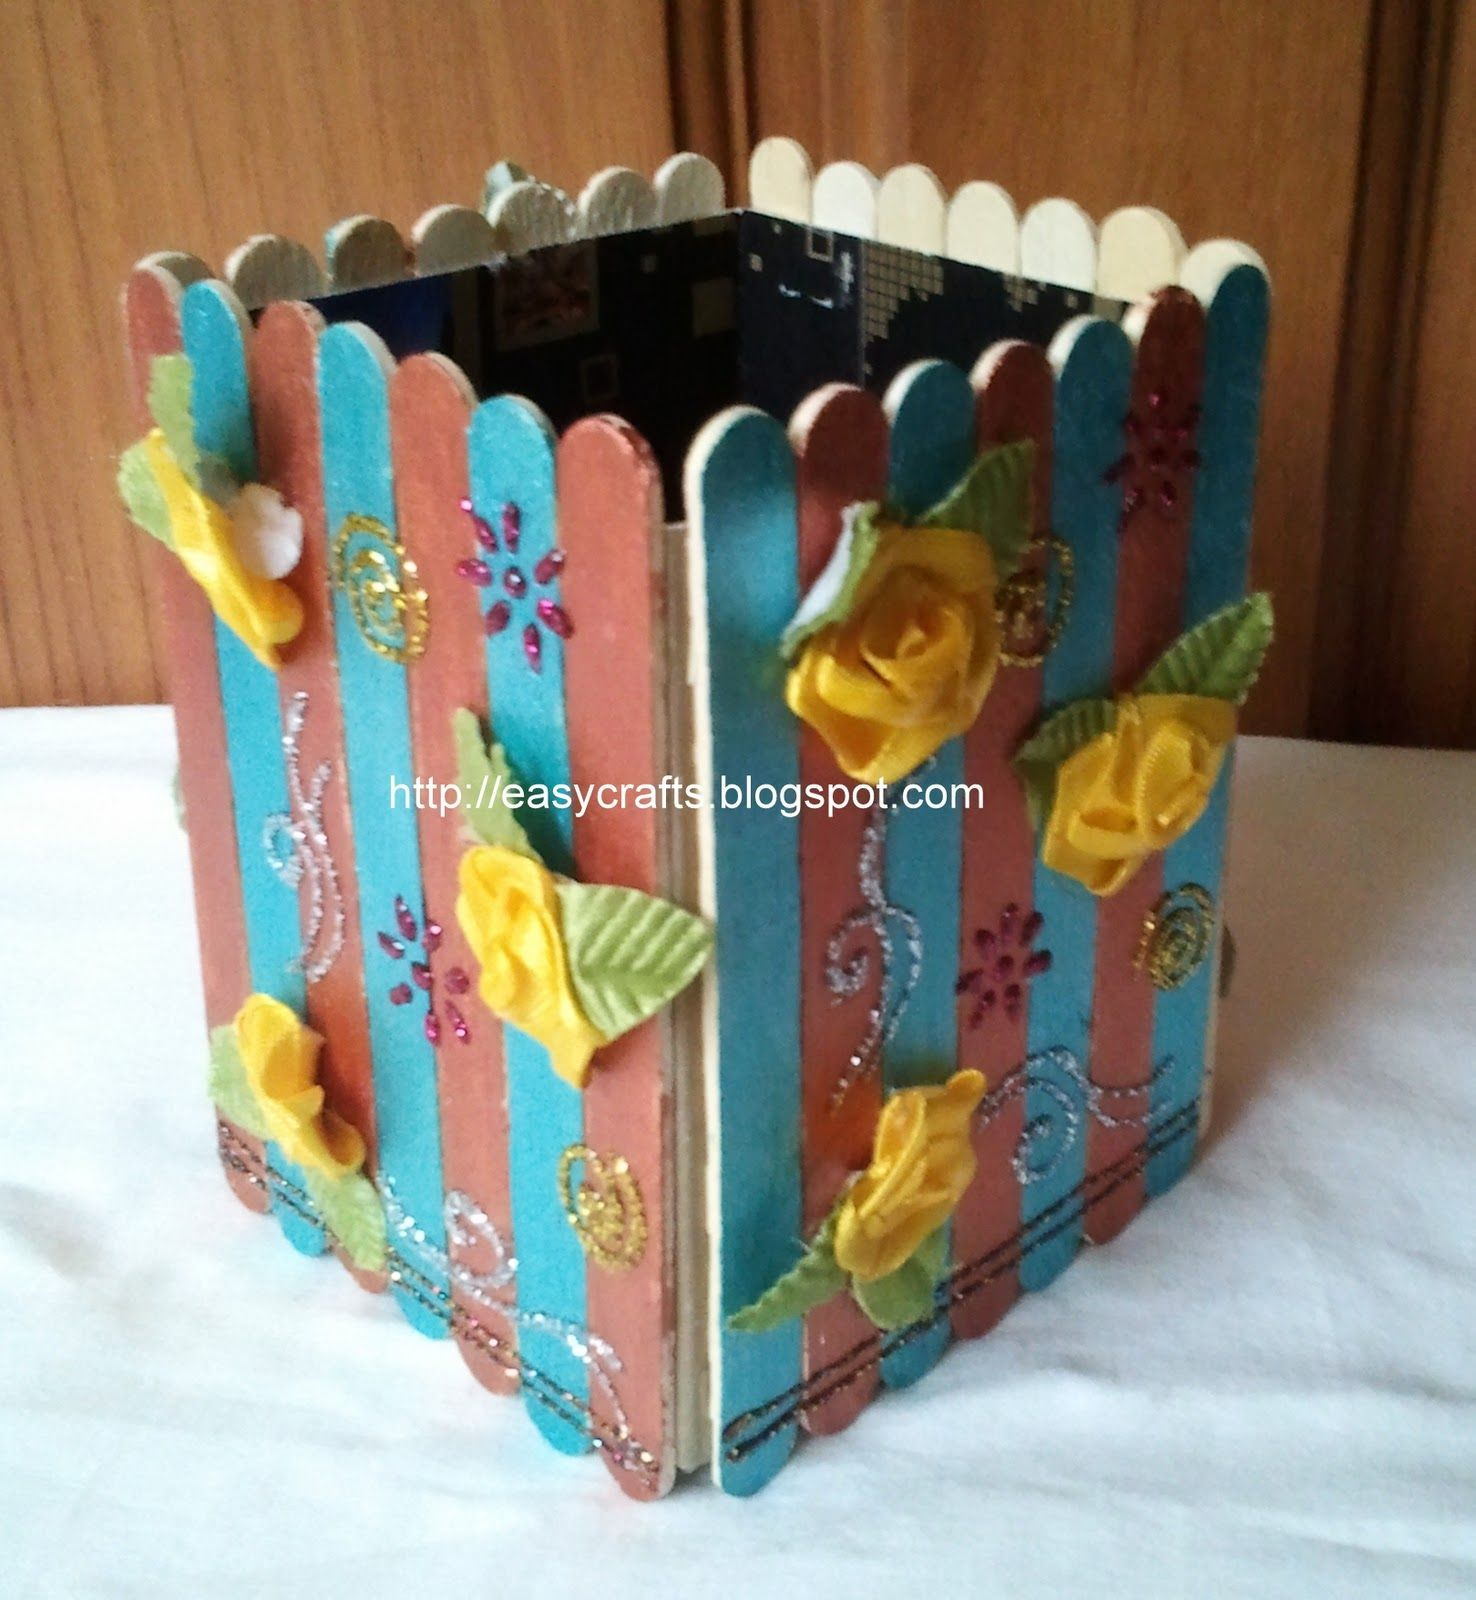 Arts and crafts sticks - Ice Cream Stick Crafts Pen Stand Made With Icecream Sticks And Decorated With Fabric Colours